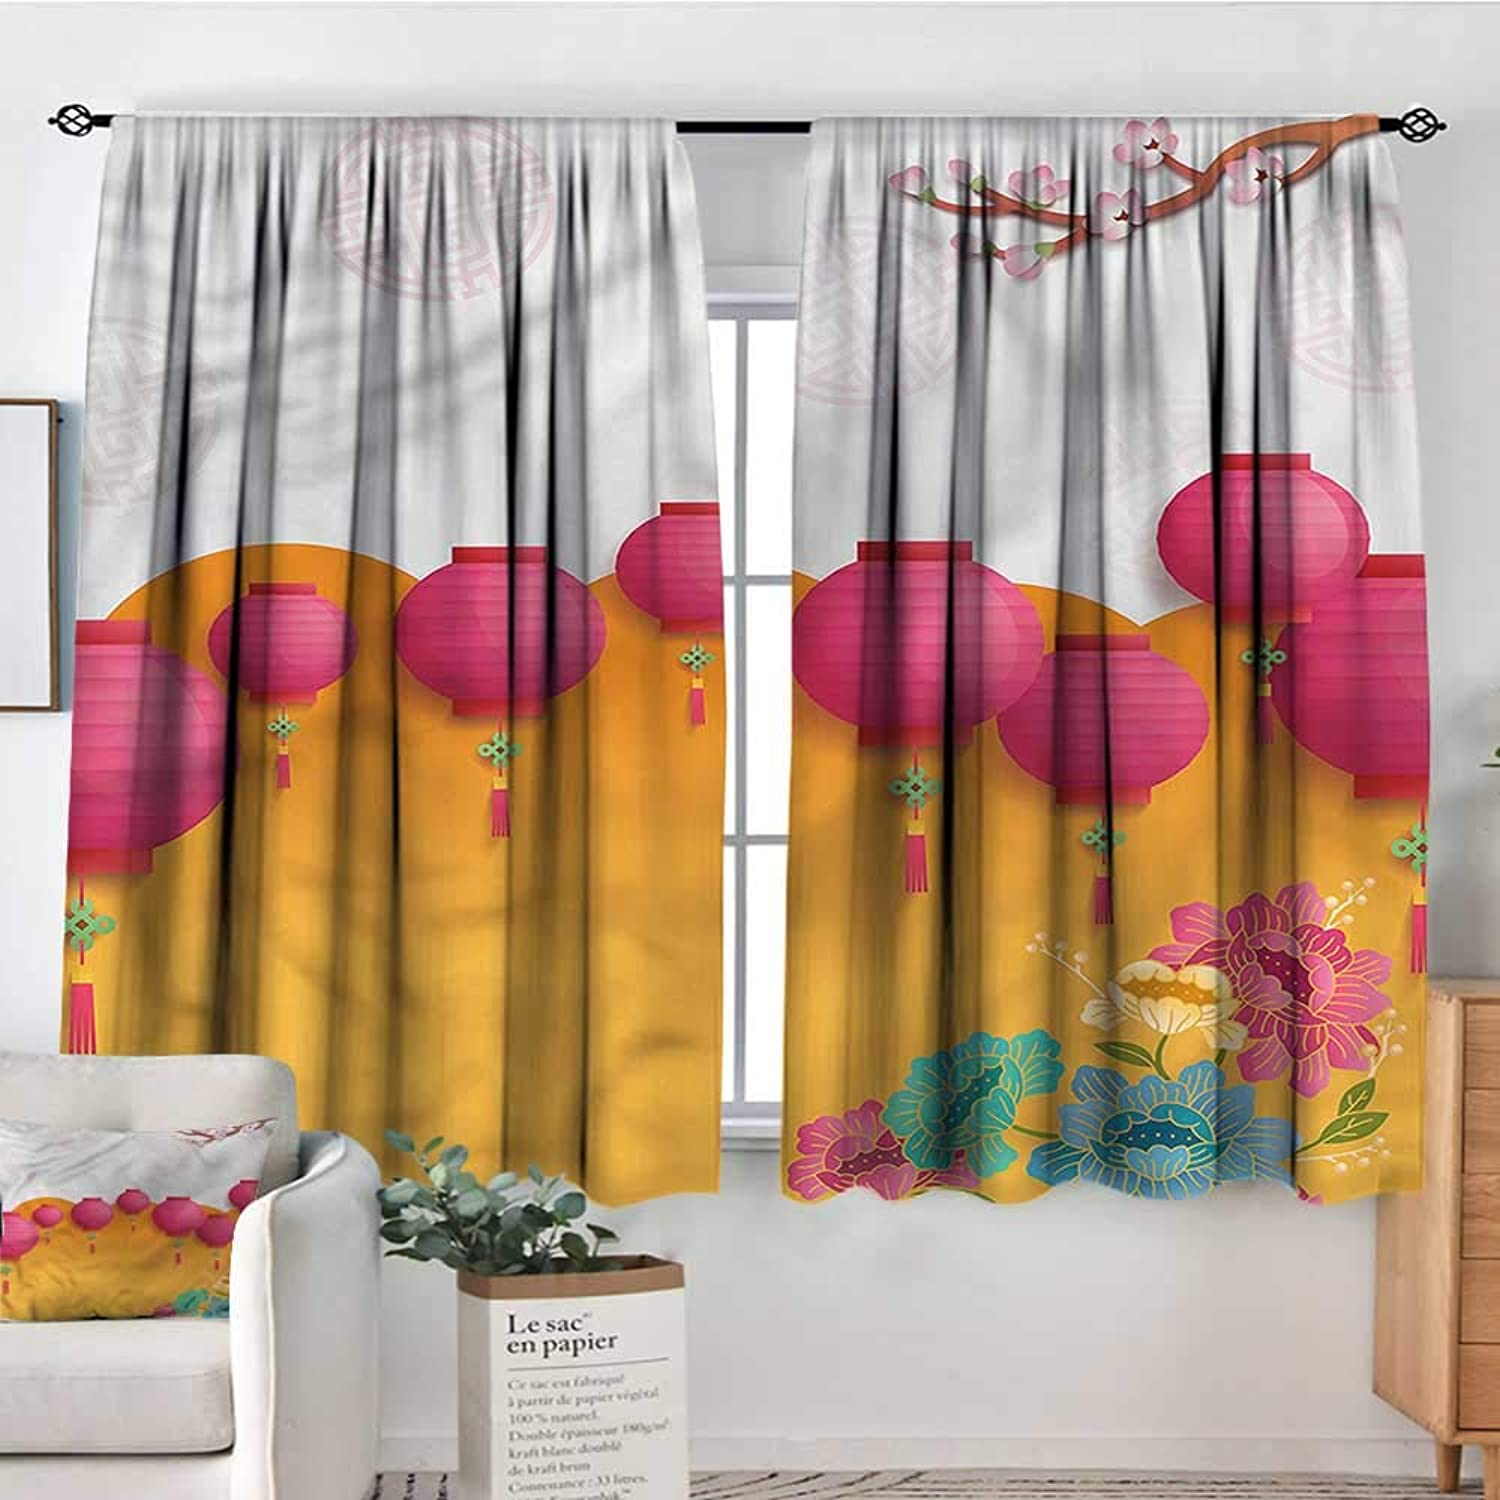 Sanring Lantern,Kids Decor Curtain Asian New Year Fun 42 X72  Printed Curtains for Iving Room